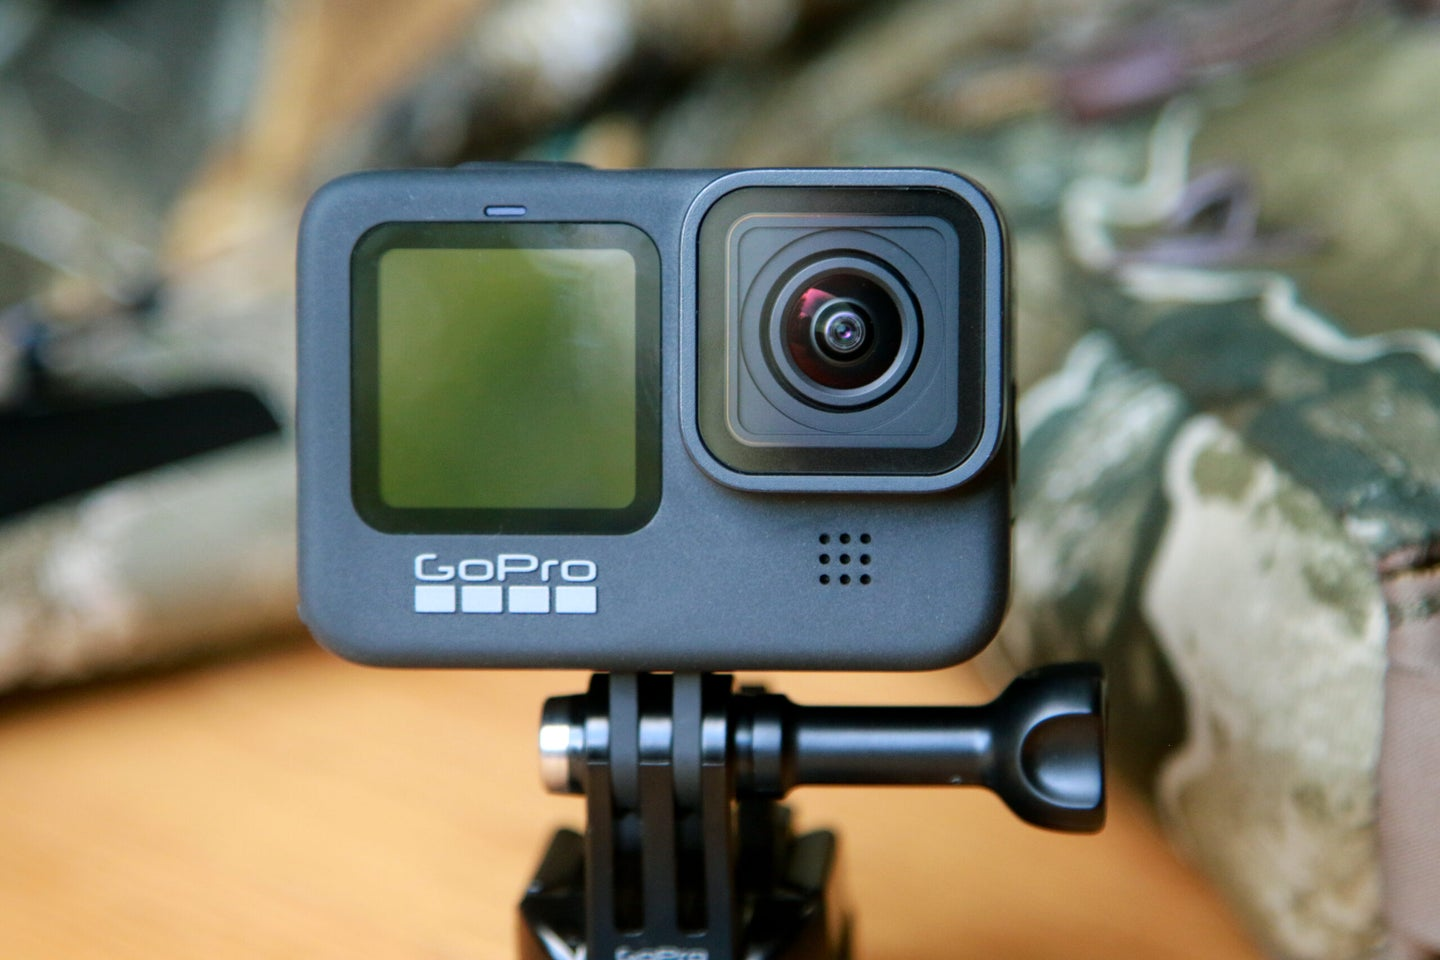 black gopro hero9 action camera with front lens and camo in the background